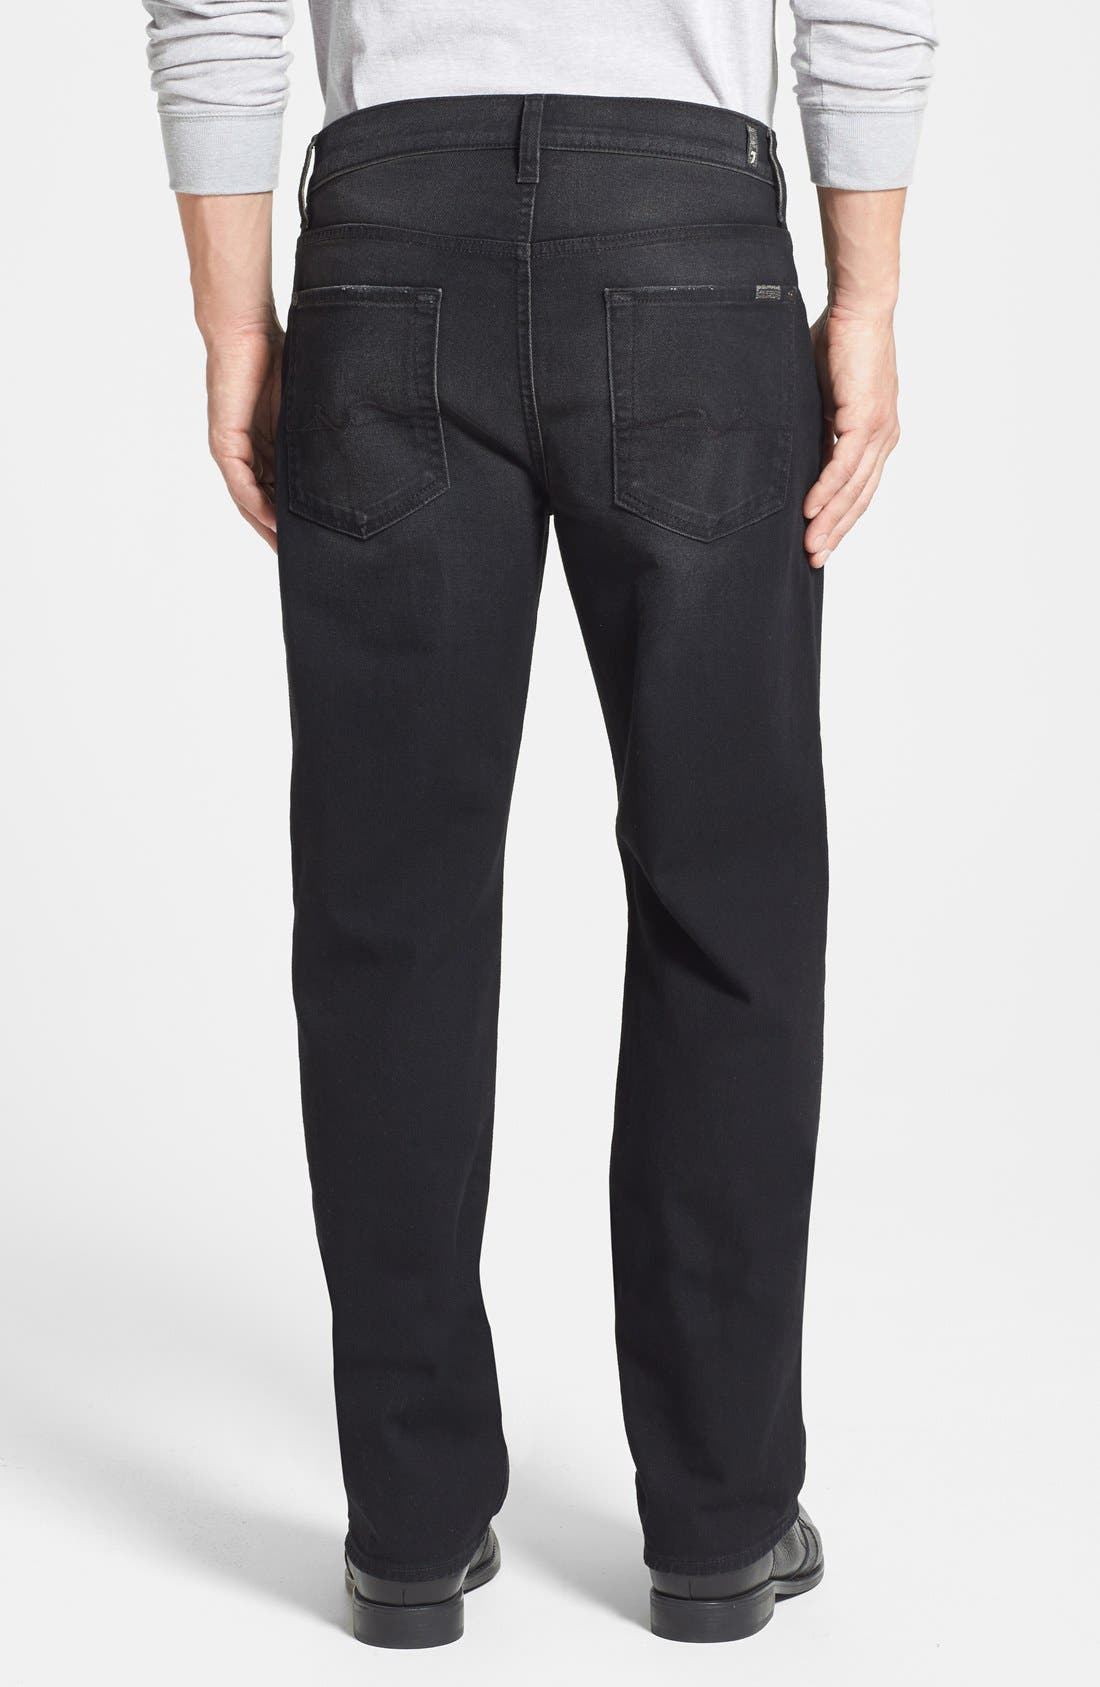 Alternate Image 2  - 7 For All Mankind® 'Austyn' Relaxed Straight Leg Jeans (Dark West Edge) (Online Only)